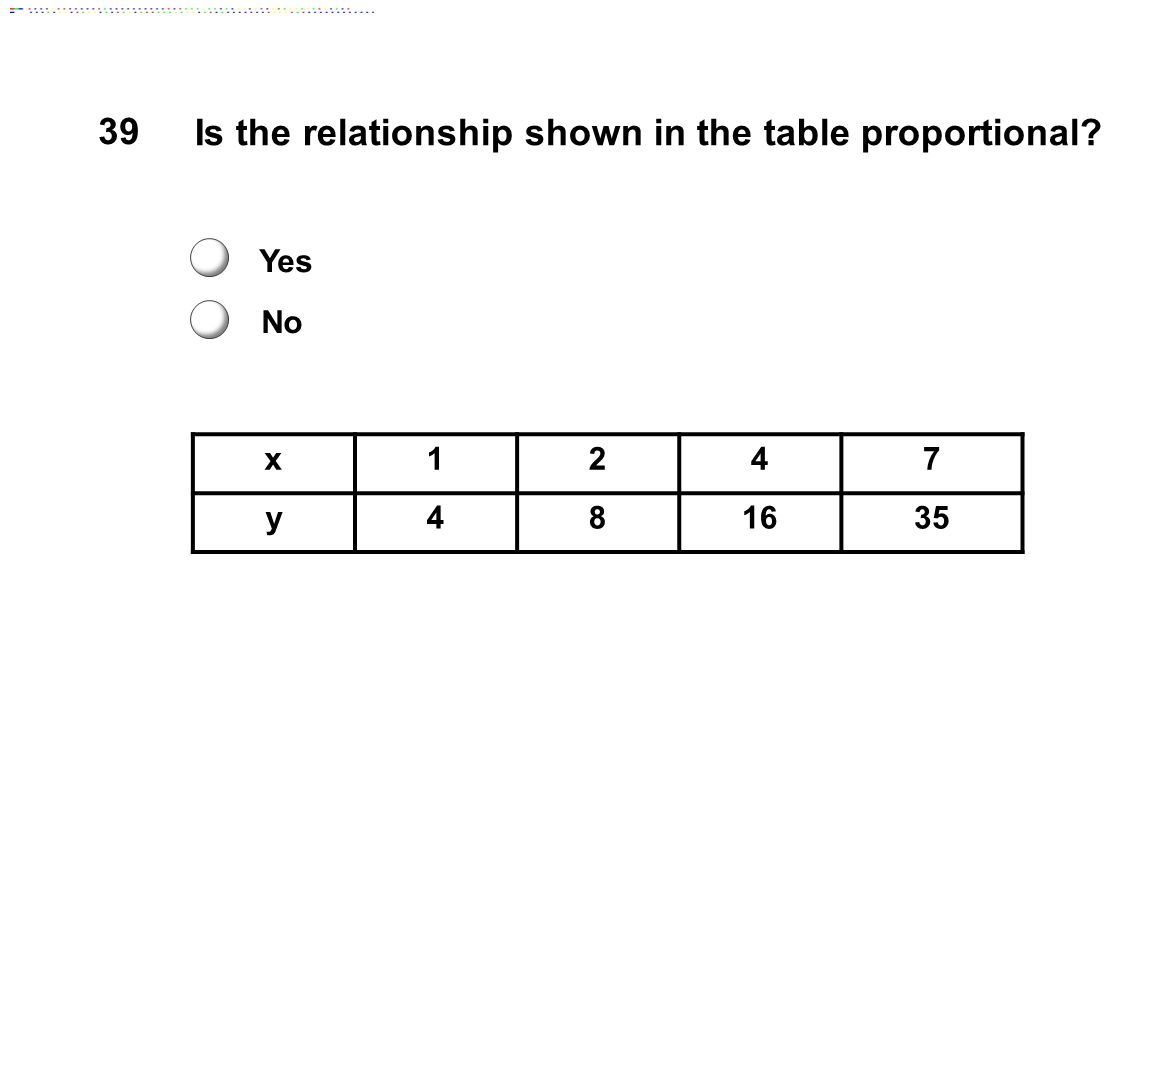 Is the relationship shown in the table proportional